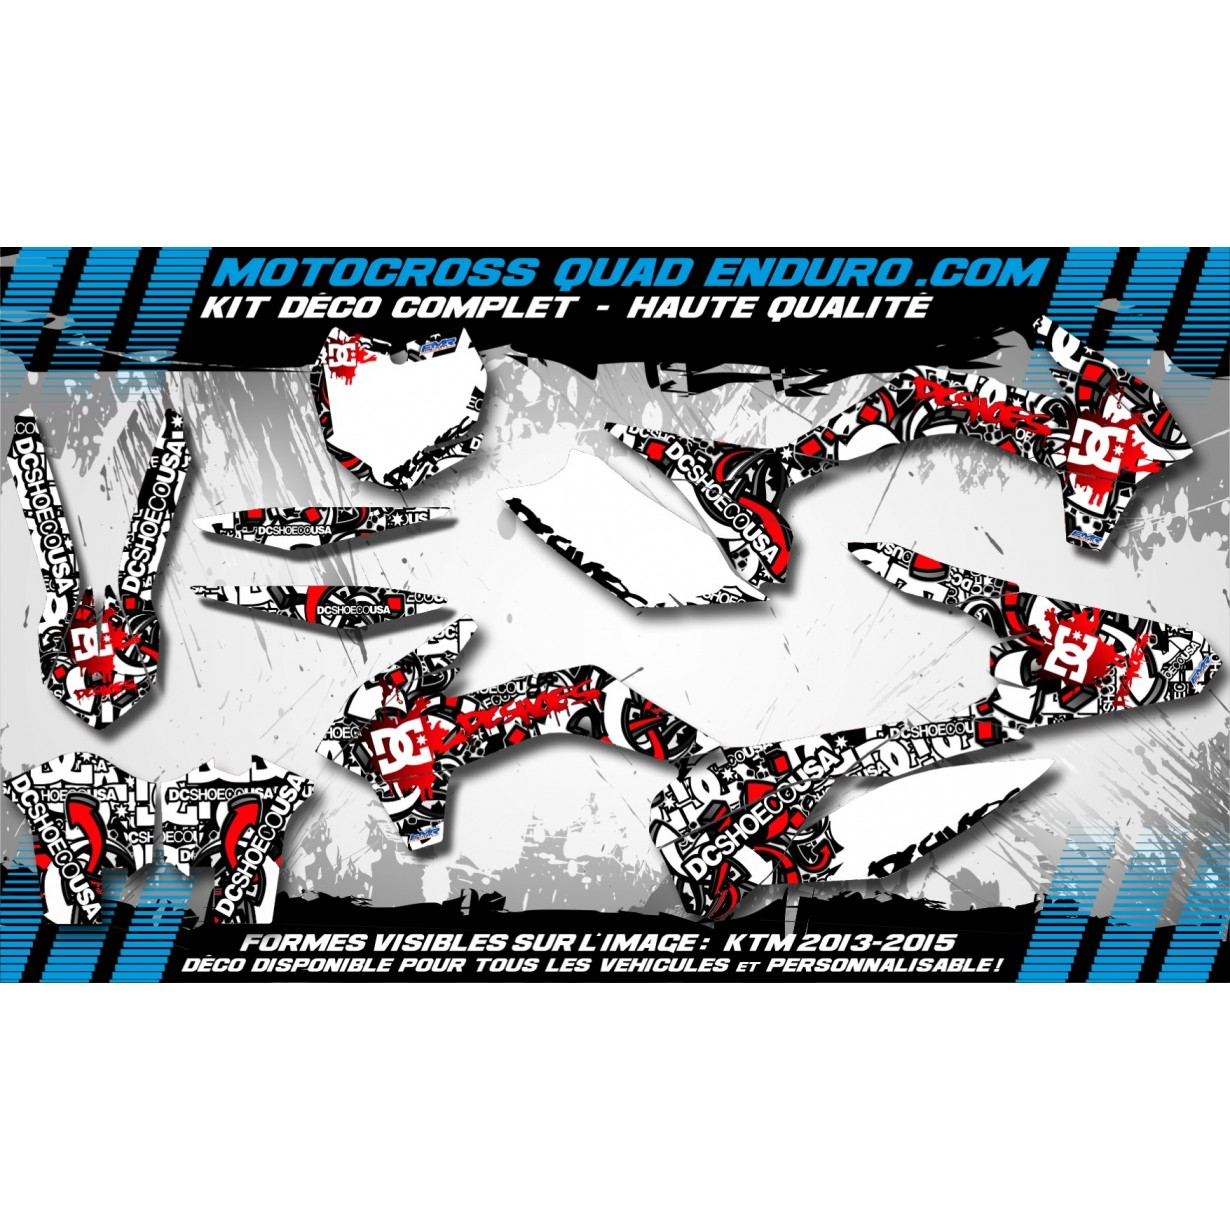 KIT DÉCO Perso 250 CRF 04-05 DC B&W MA15A